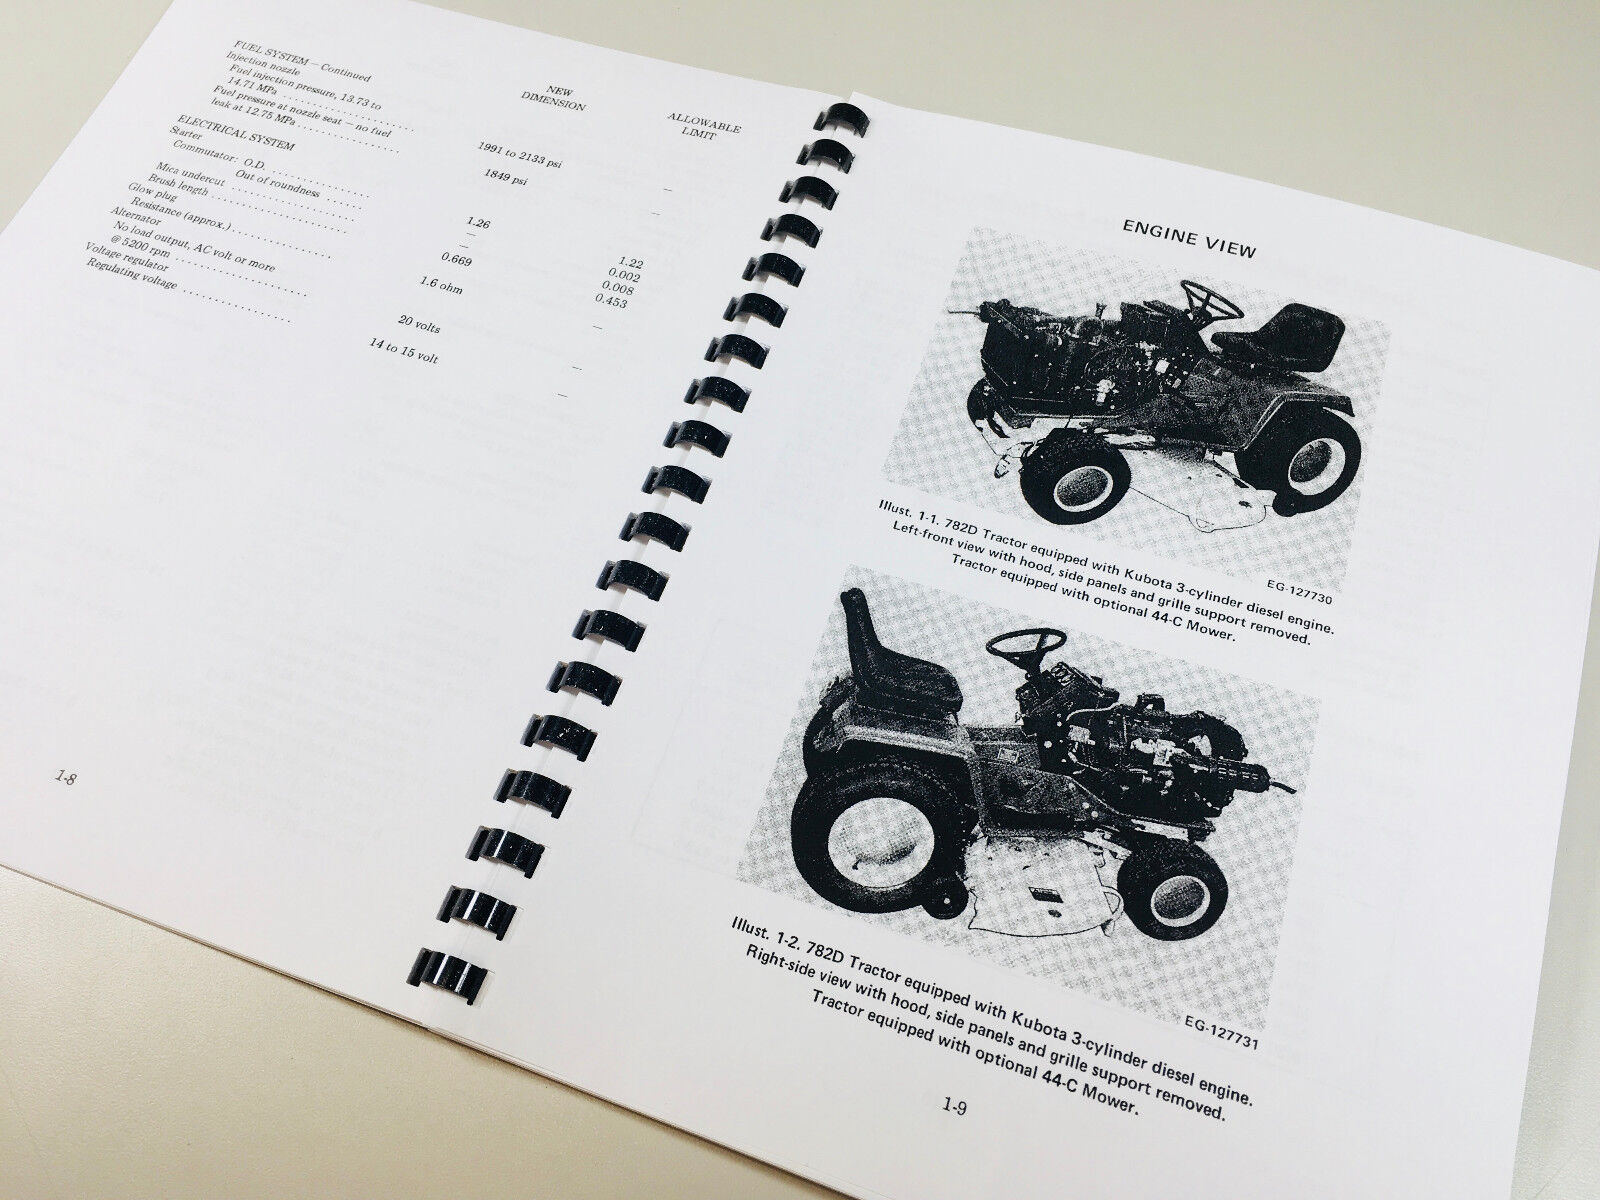 This is a new reproduction of an OEM Original Equipment Manufacturers manual .